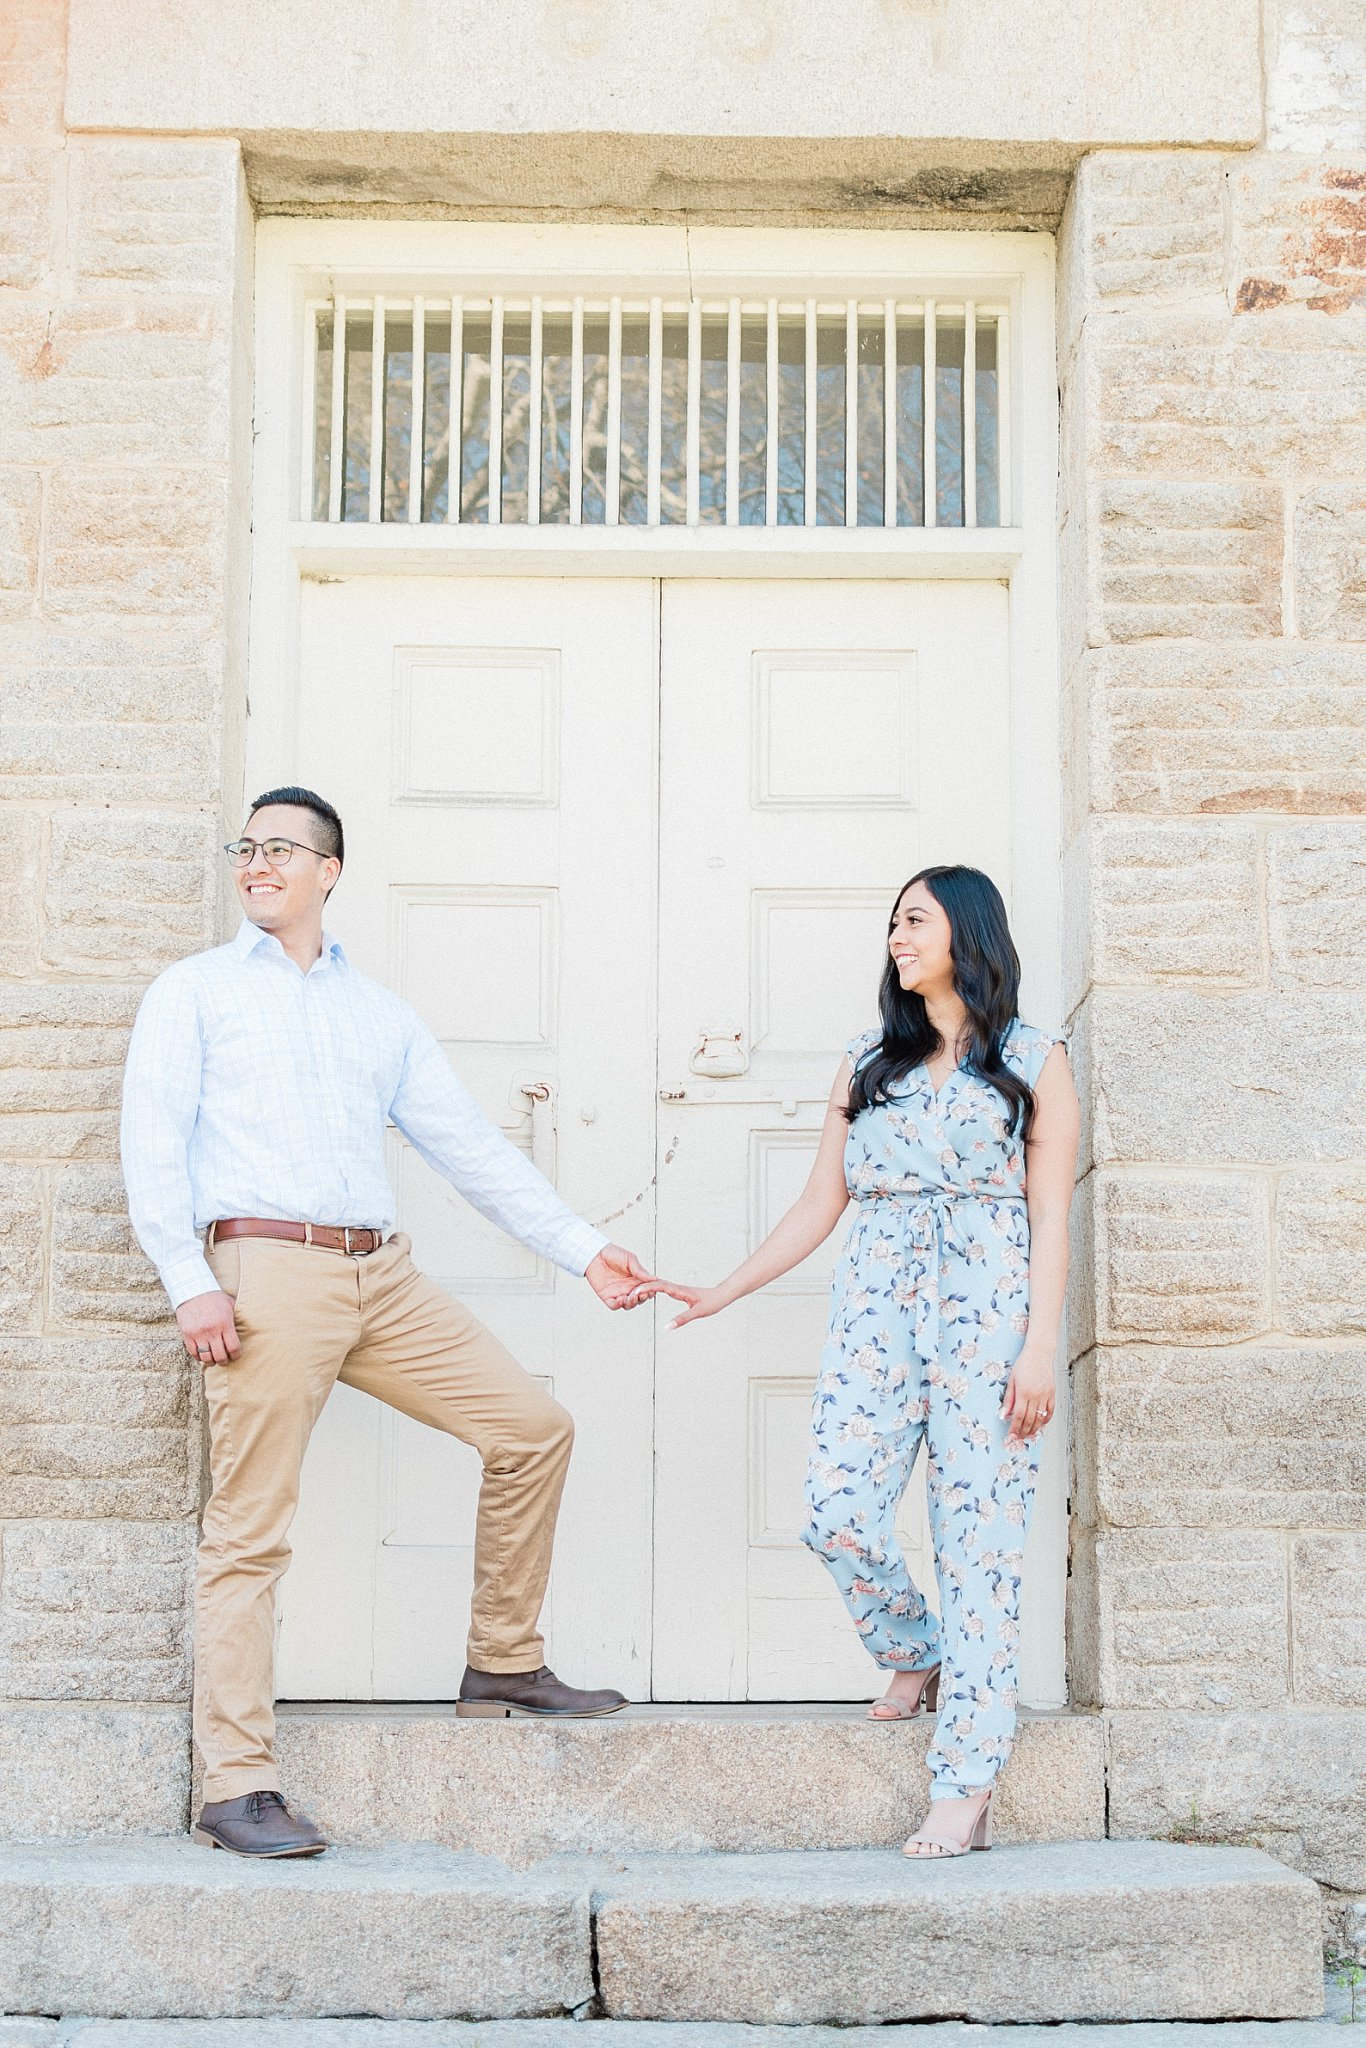 monterey-engagement-photographer-city-hall-drew-zavala-khrystal-chris_0053.jpg